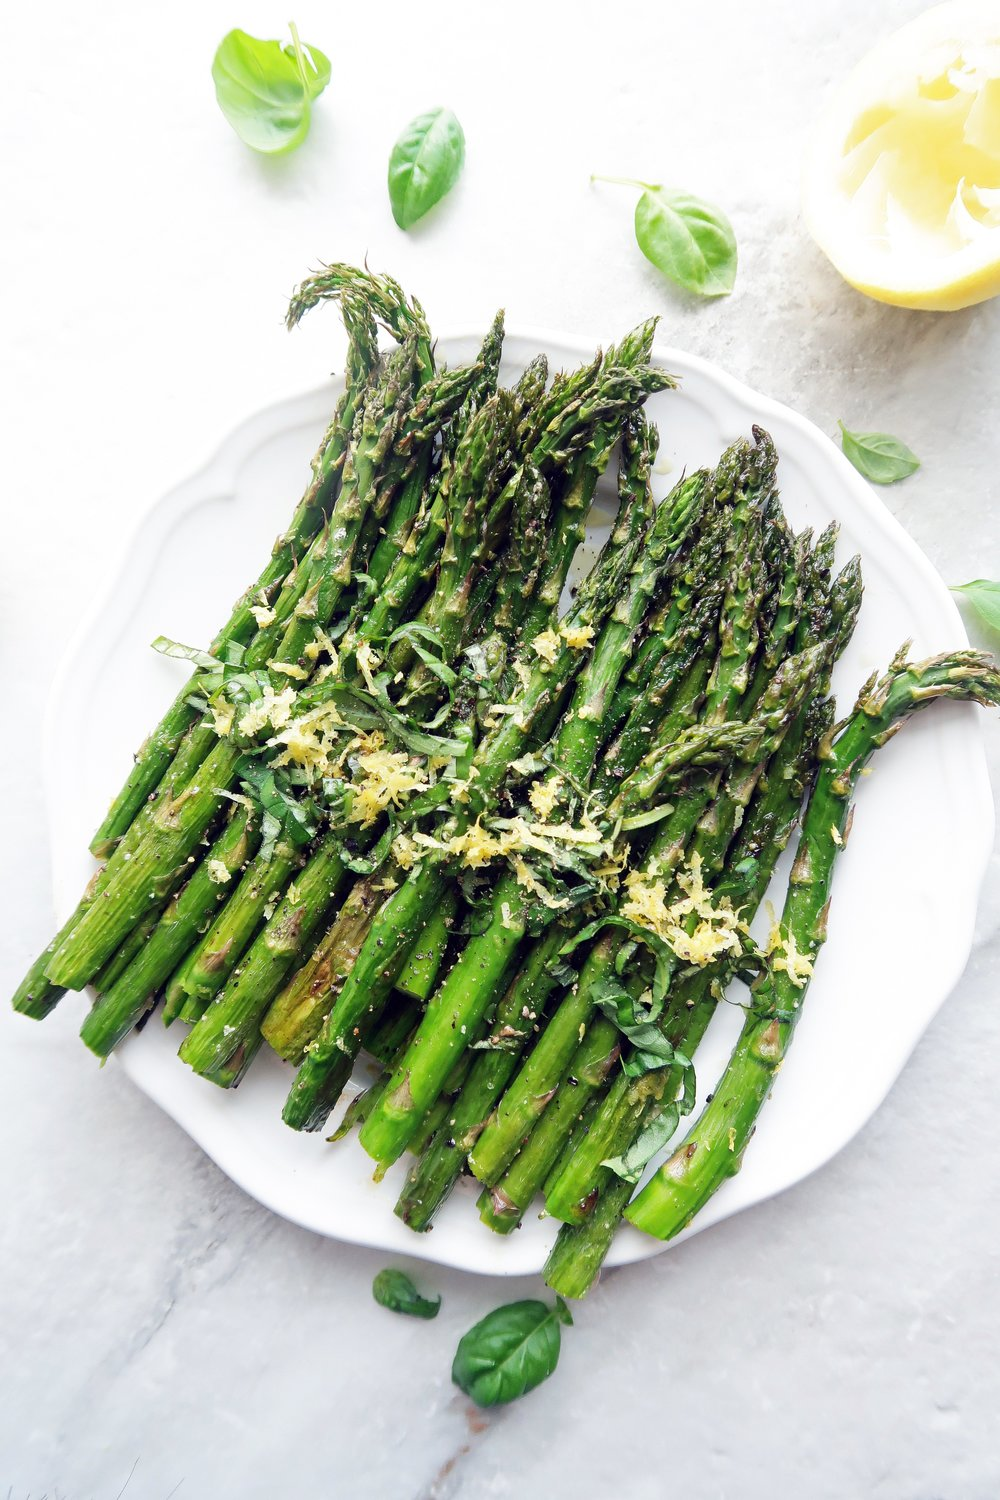 Quick Roasted Asparagus with Lemon and Basil: A healthy, vegan, gluten-free side dish that's fast and easy to make. www.yayforfood.com